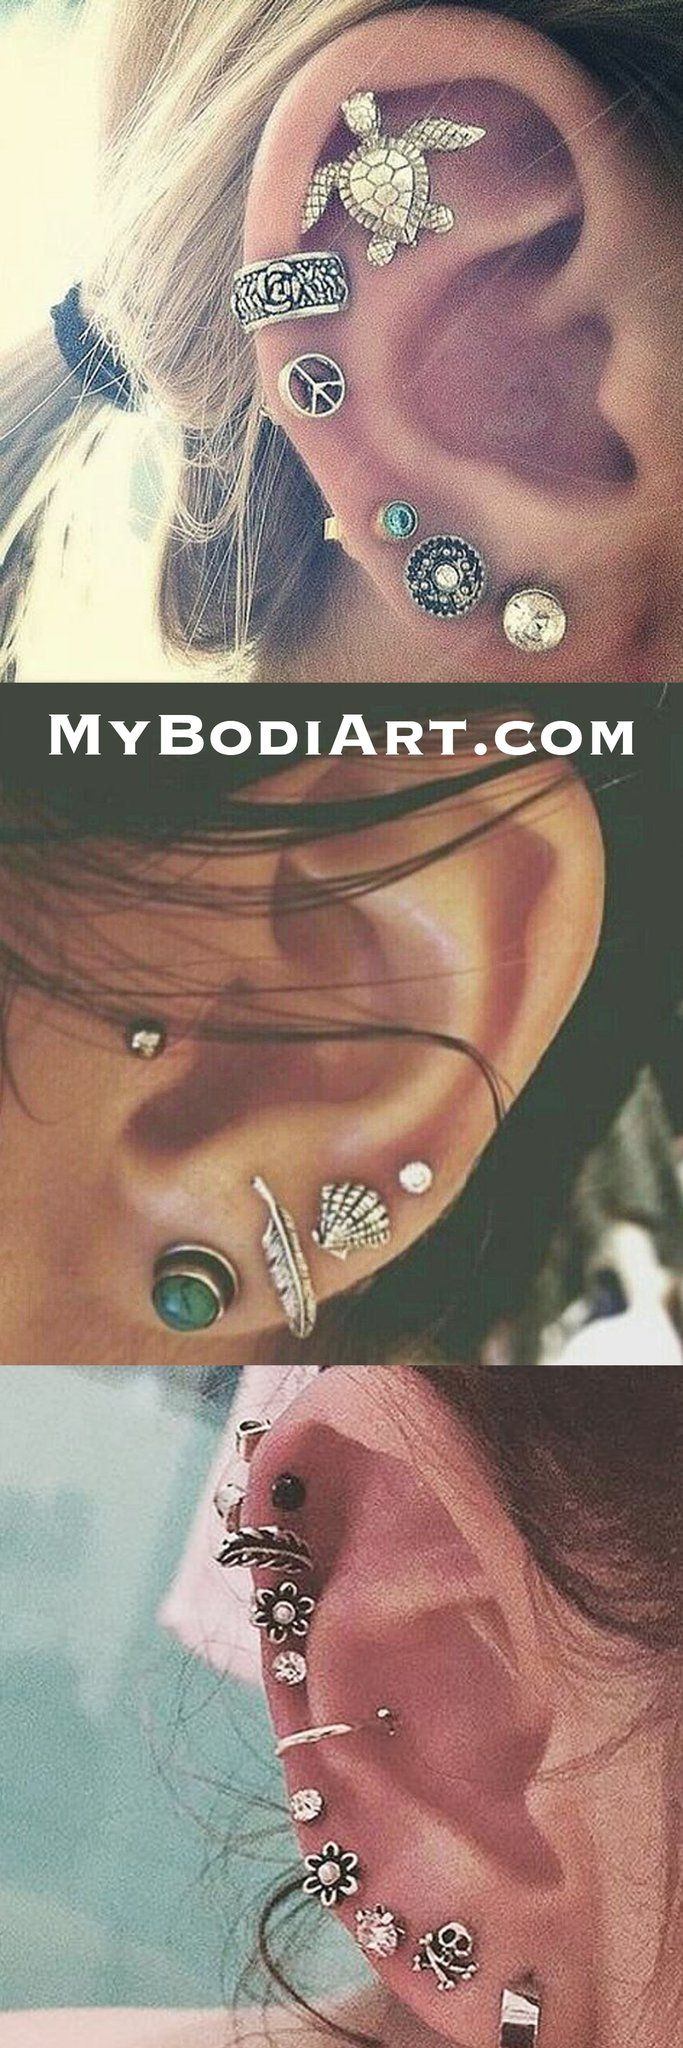 Pretty Mutiple Ear Piercing Ideas Combinations at MyBodiArt.com - Anitqued Tribal Oor Piercing Turtle Cartilage Stud - Feather Earring - Flower Auricle Jewelry